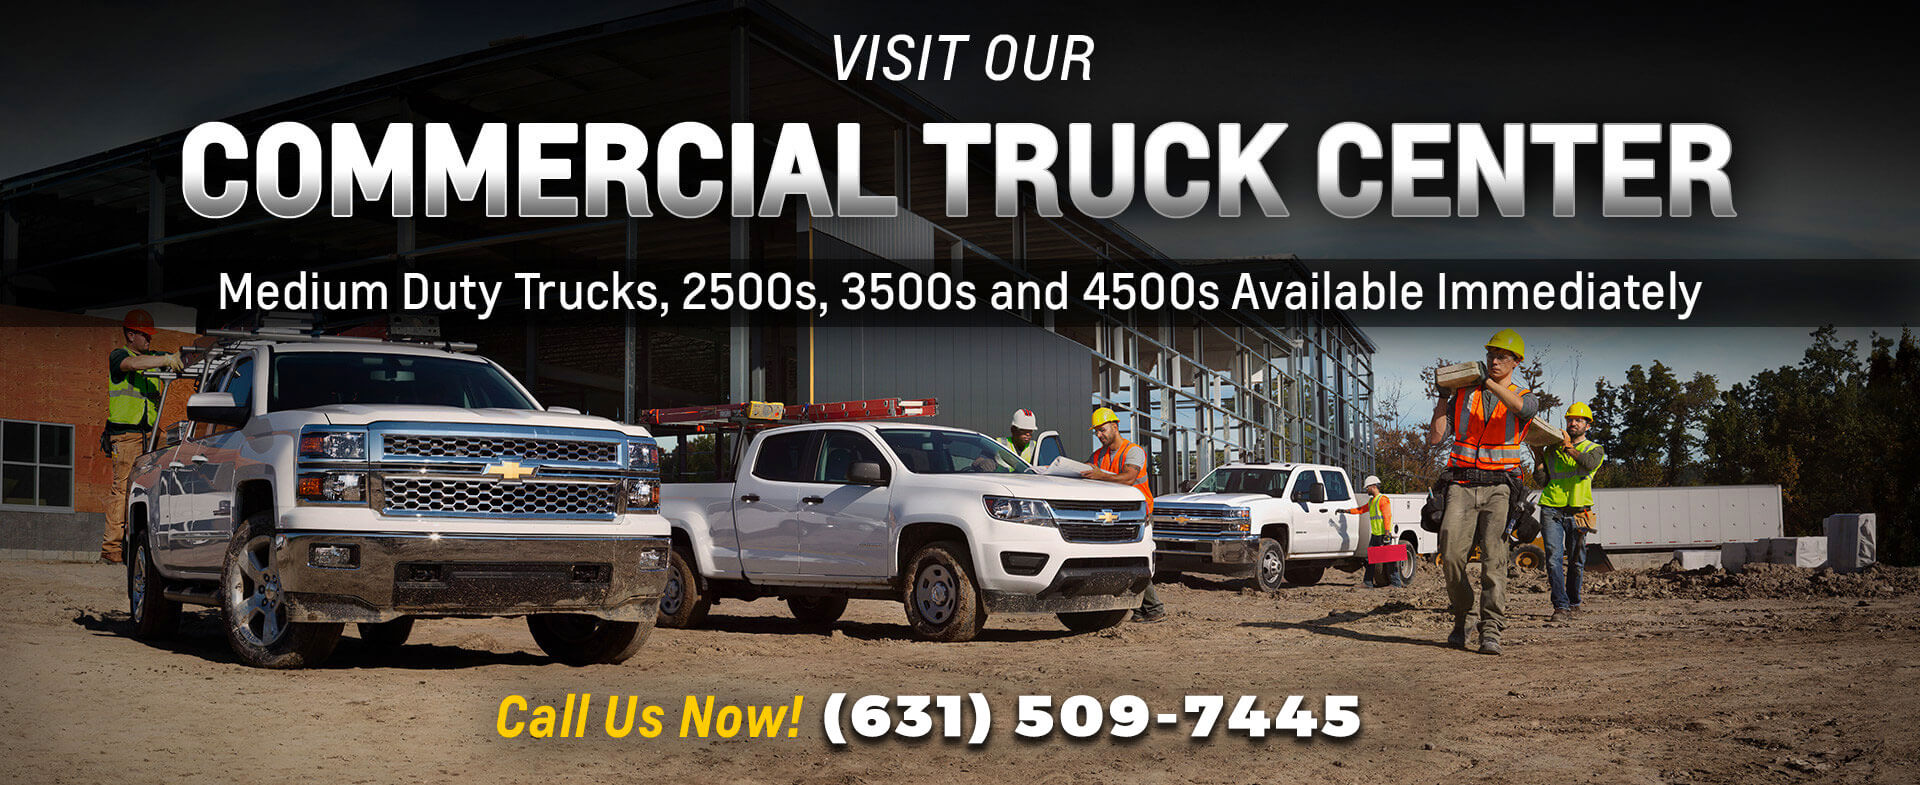 Chevrolet Commercial Vehicles